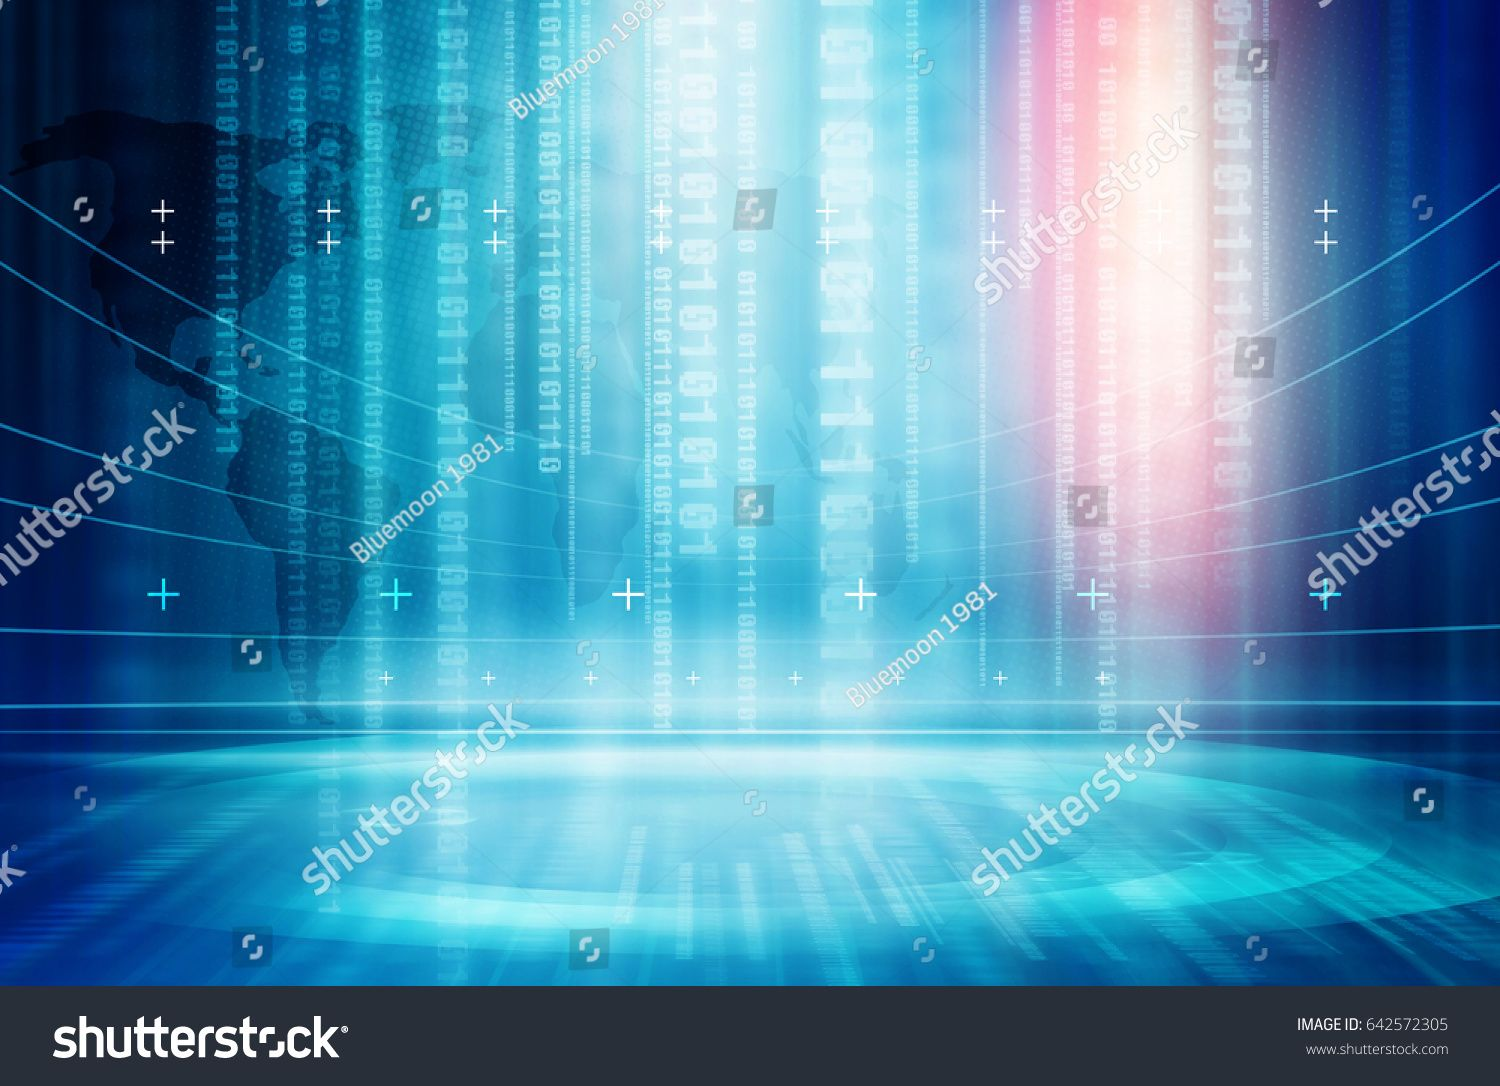 Graphical Abstract Technology Background High Tech And Modern 3d Space Ad Affiliate Technology Backgroun In 2020 Technology Background Tech Background Abstract